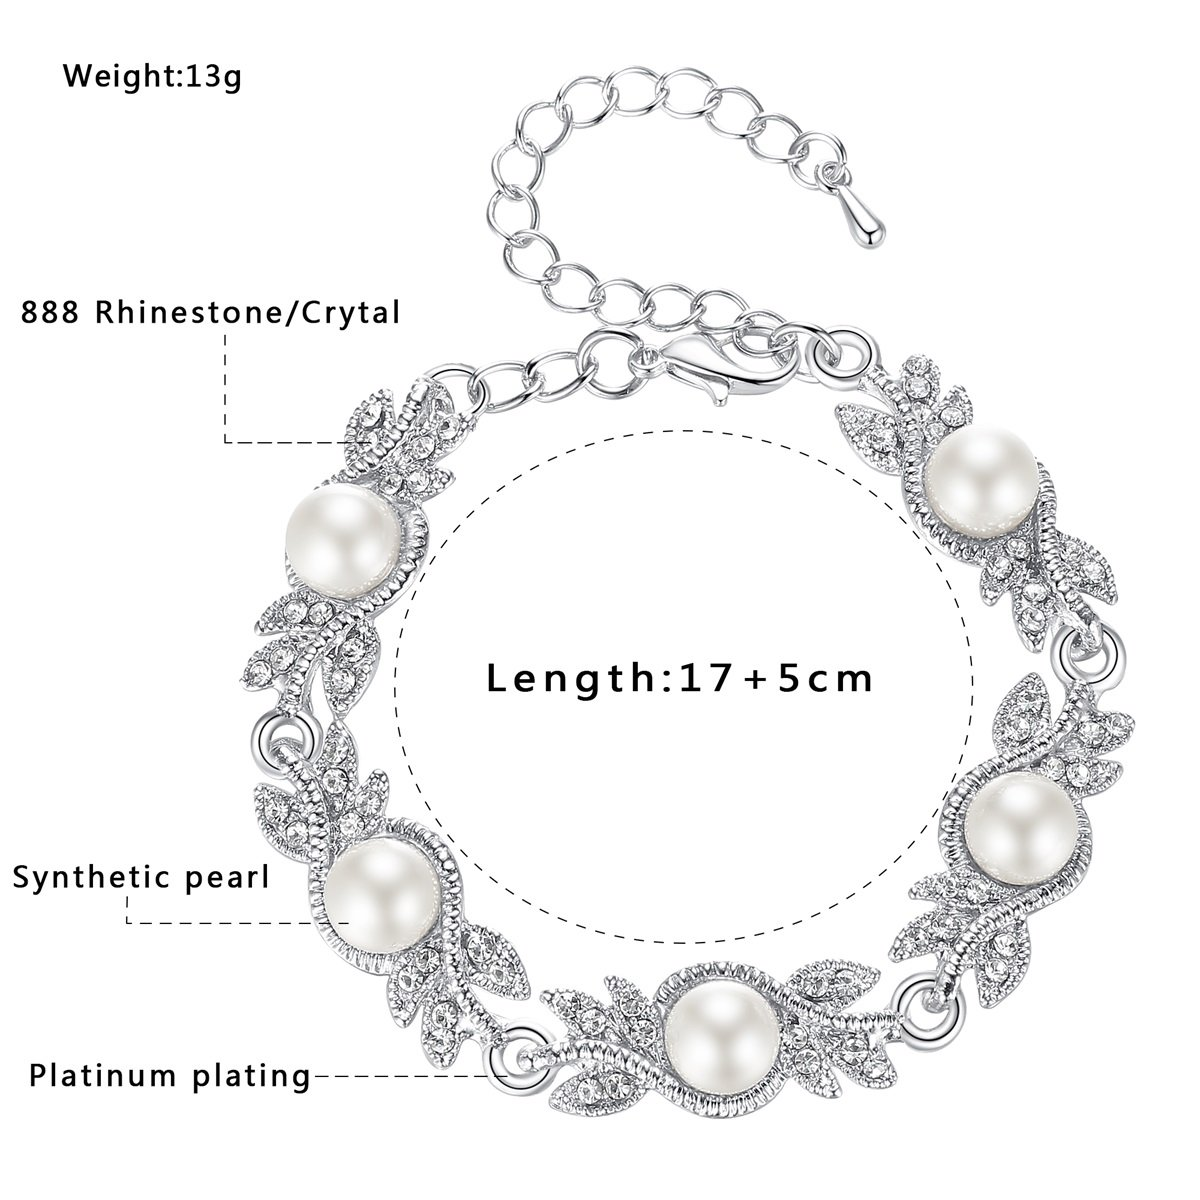 mecresh Women's Simulated Pearl Jewelery Set for Wedding Clear Austrian Crystal(1 Set Earring,1PCS Bracelet) by mecresh (Image #6)